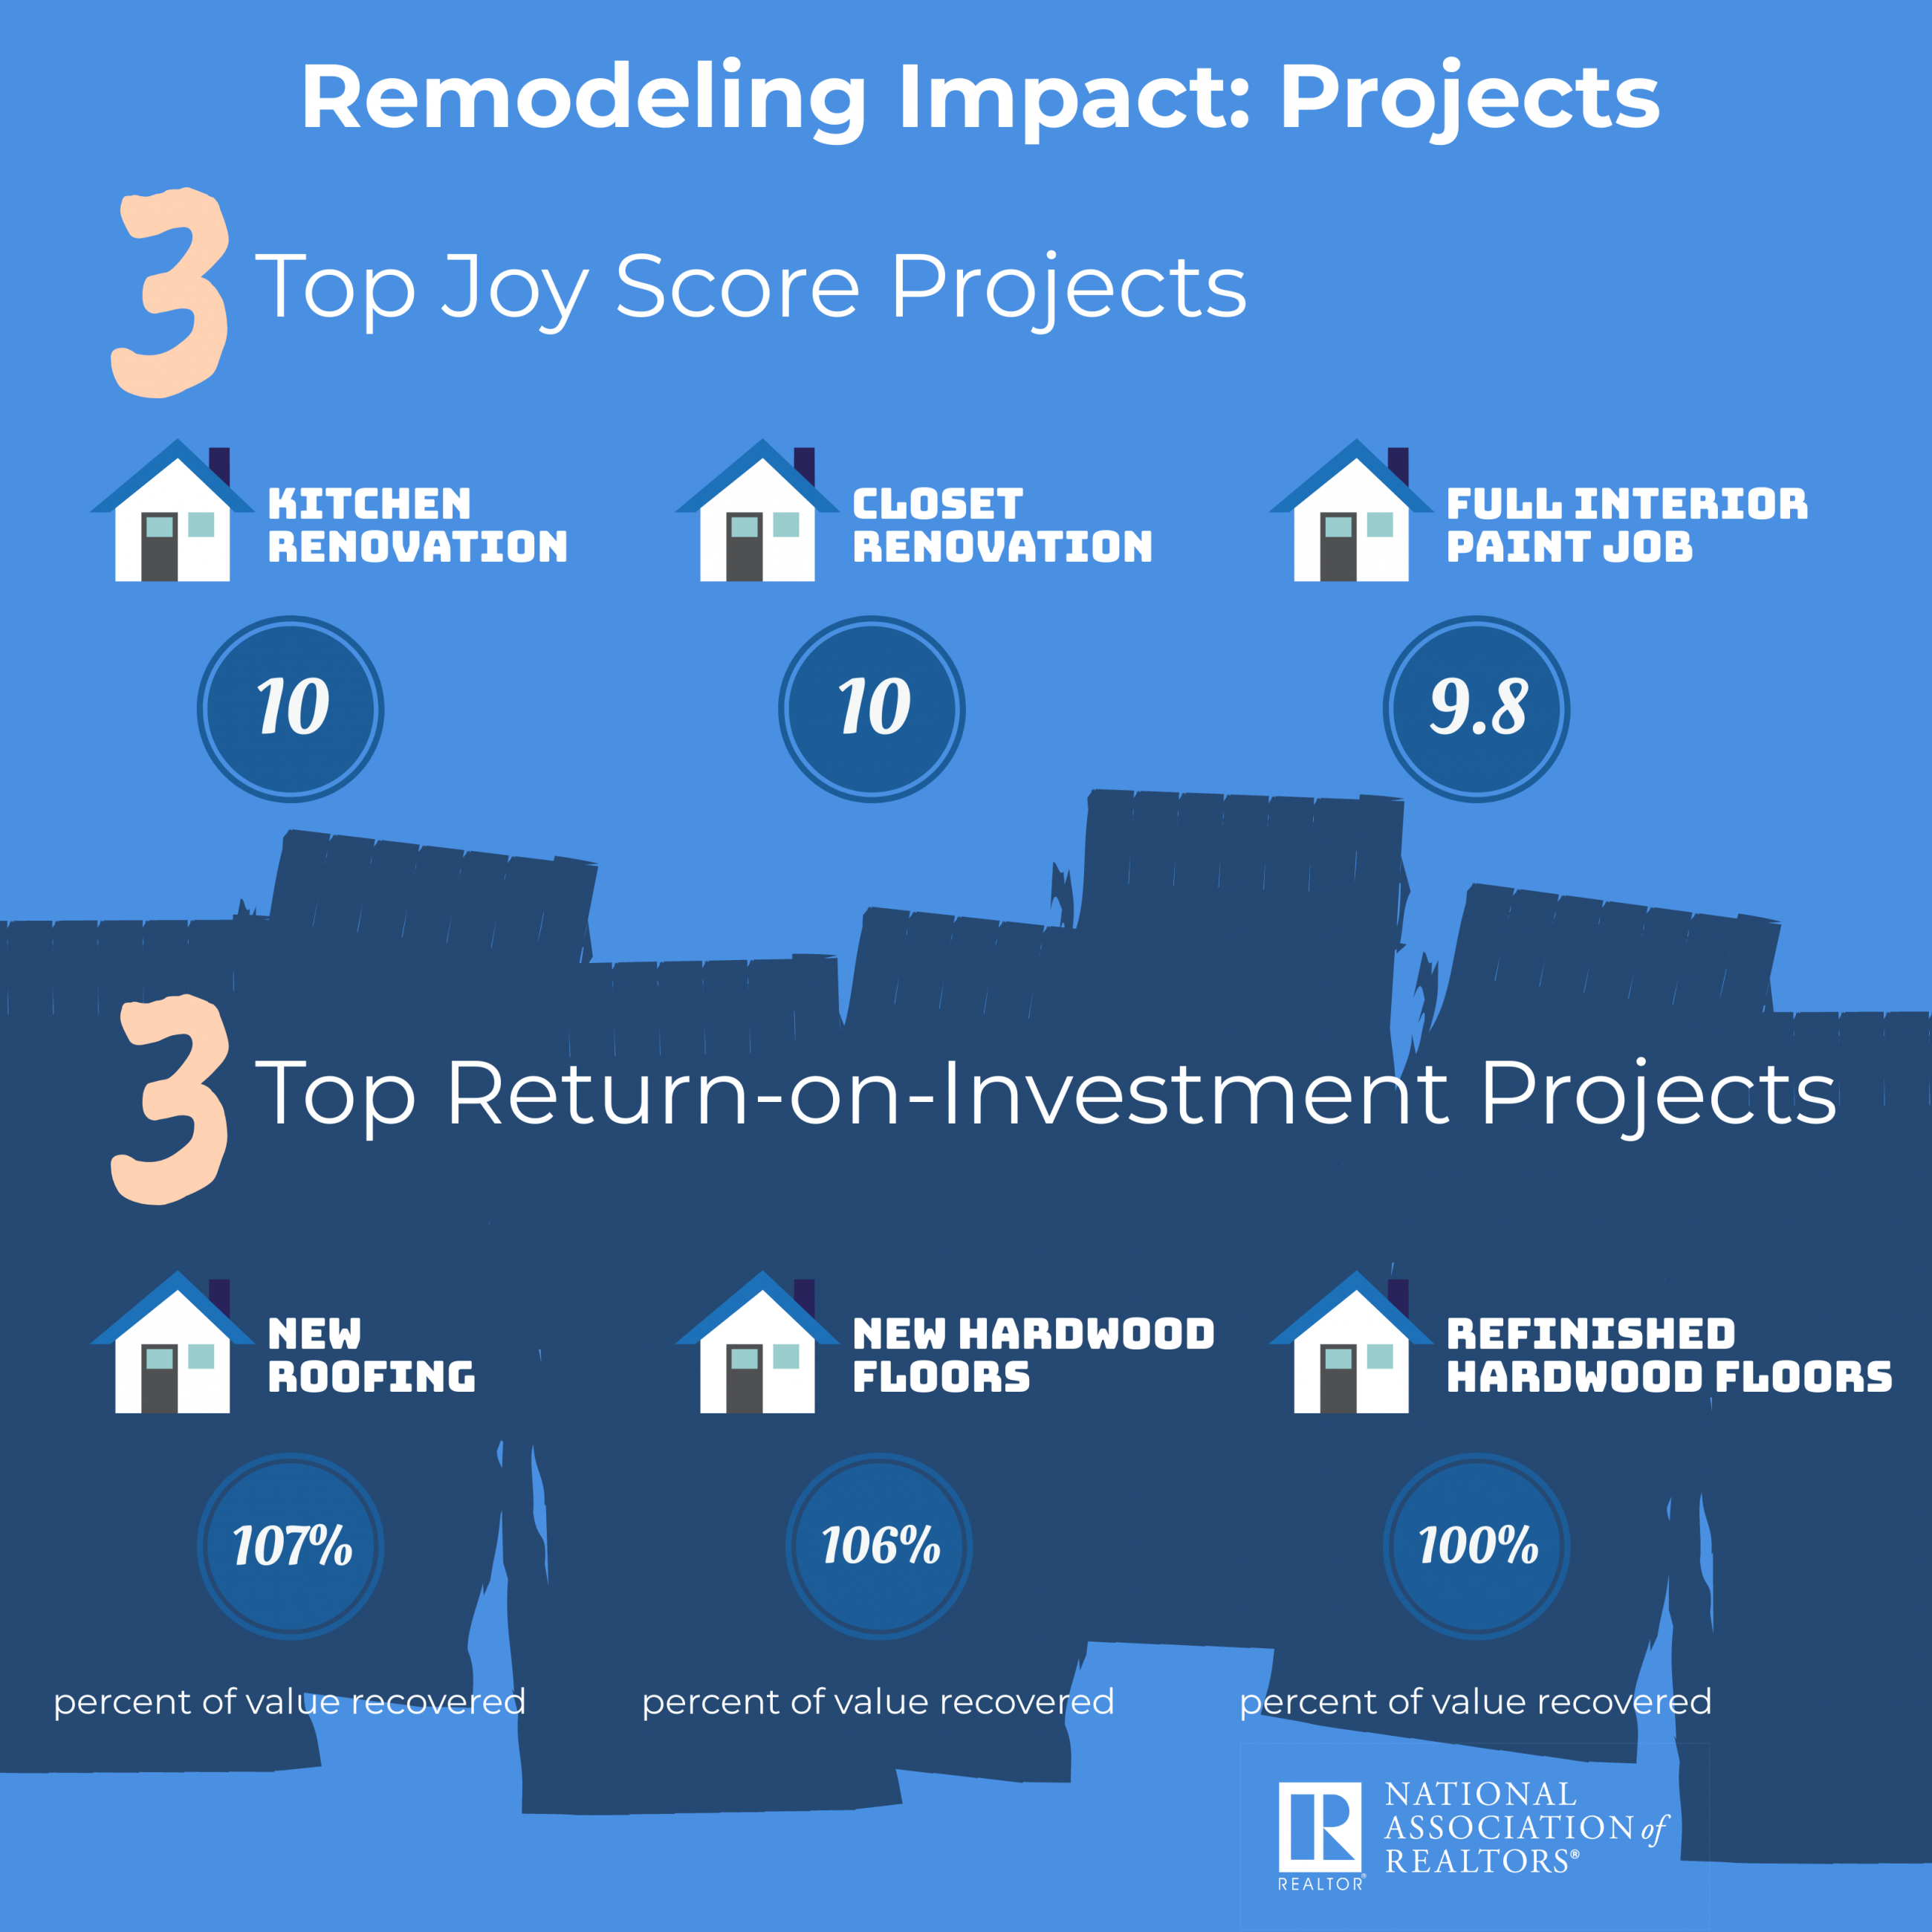 top remodeling projects. See story for more details.